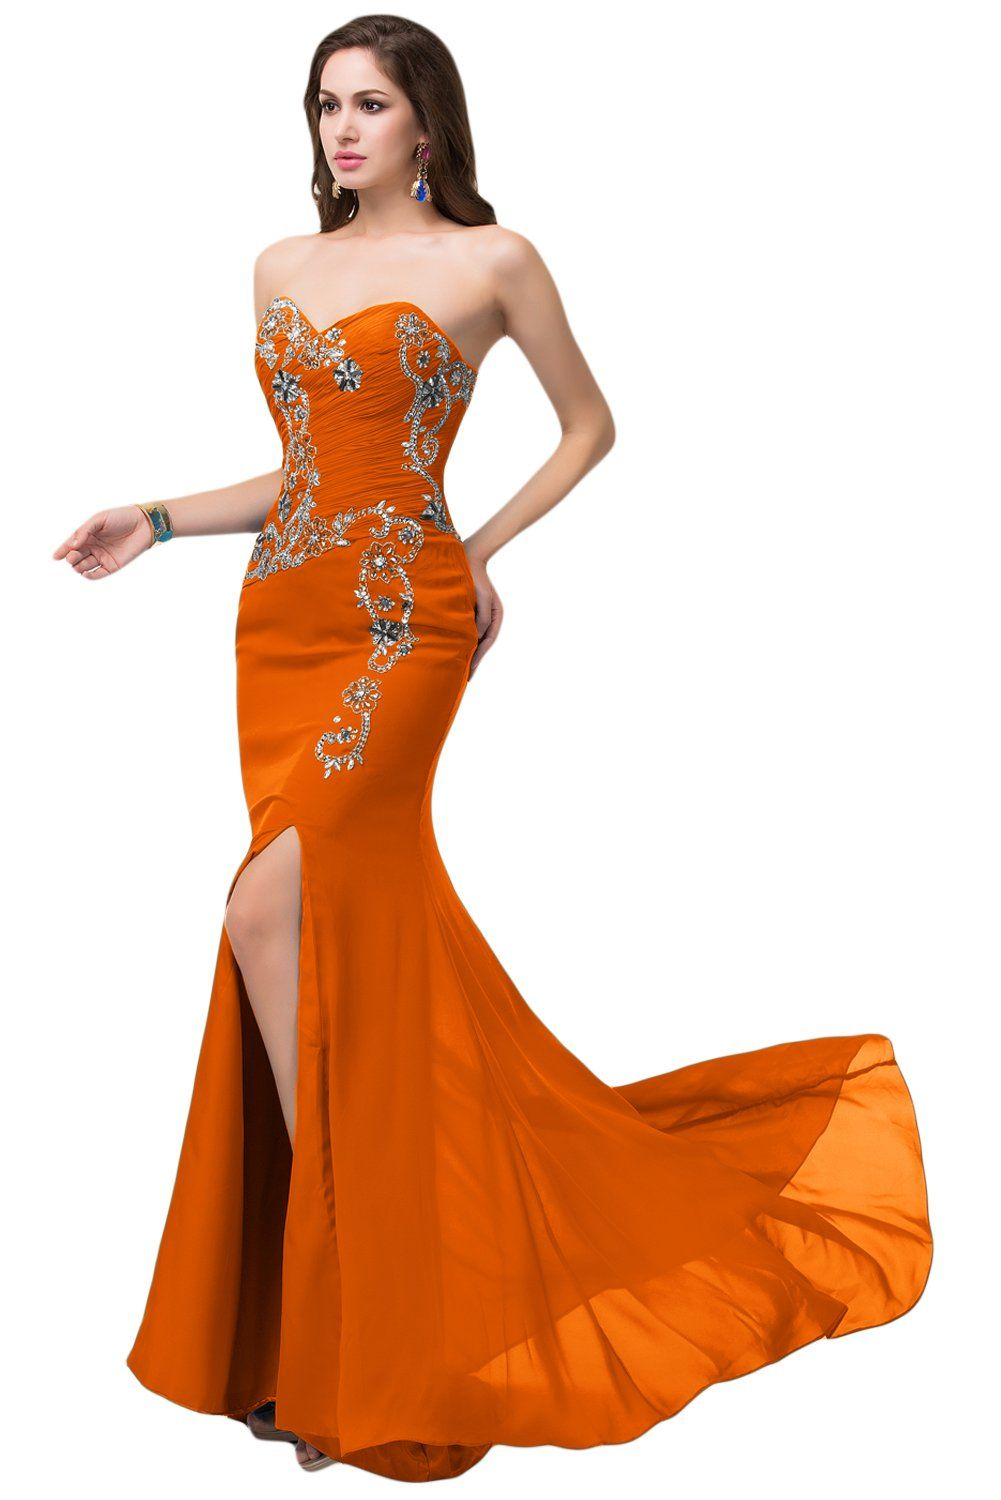 Amazon.com: Sunvary Sexy Woman Mermaid Wedding Guest Bridesmaid Dresses Formal Gowns: Clothing